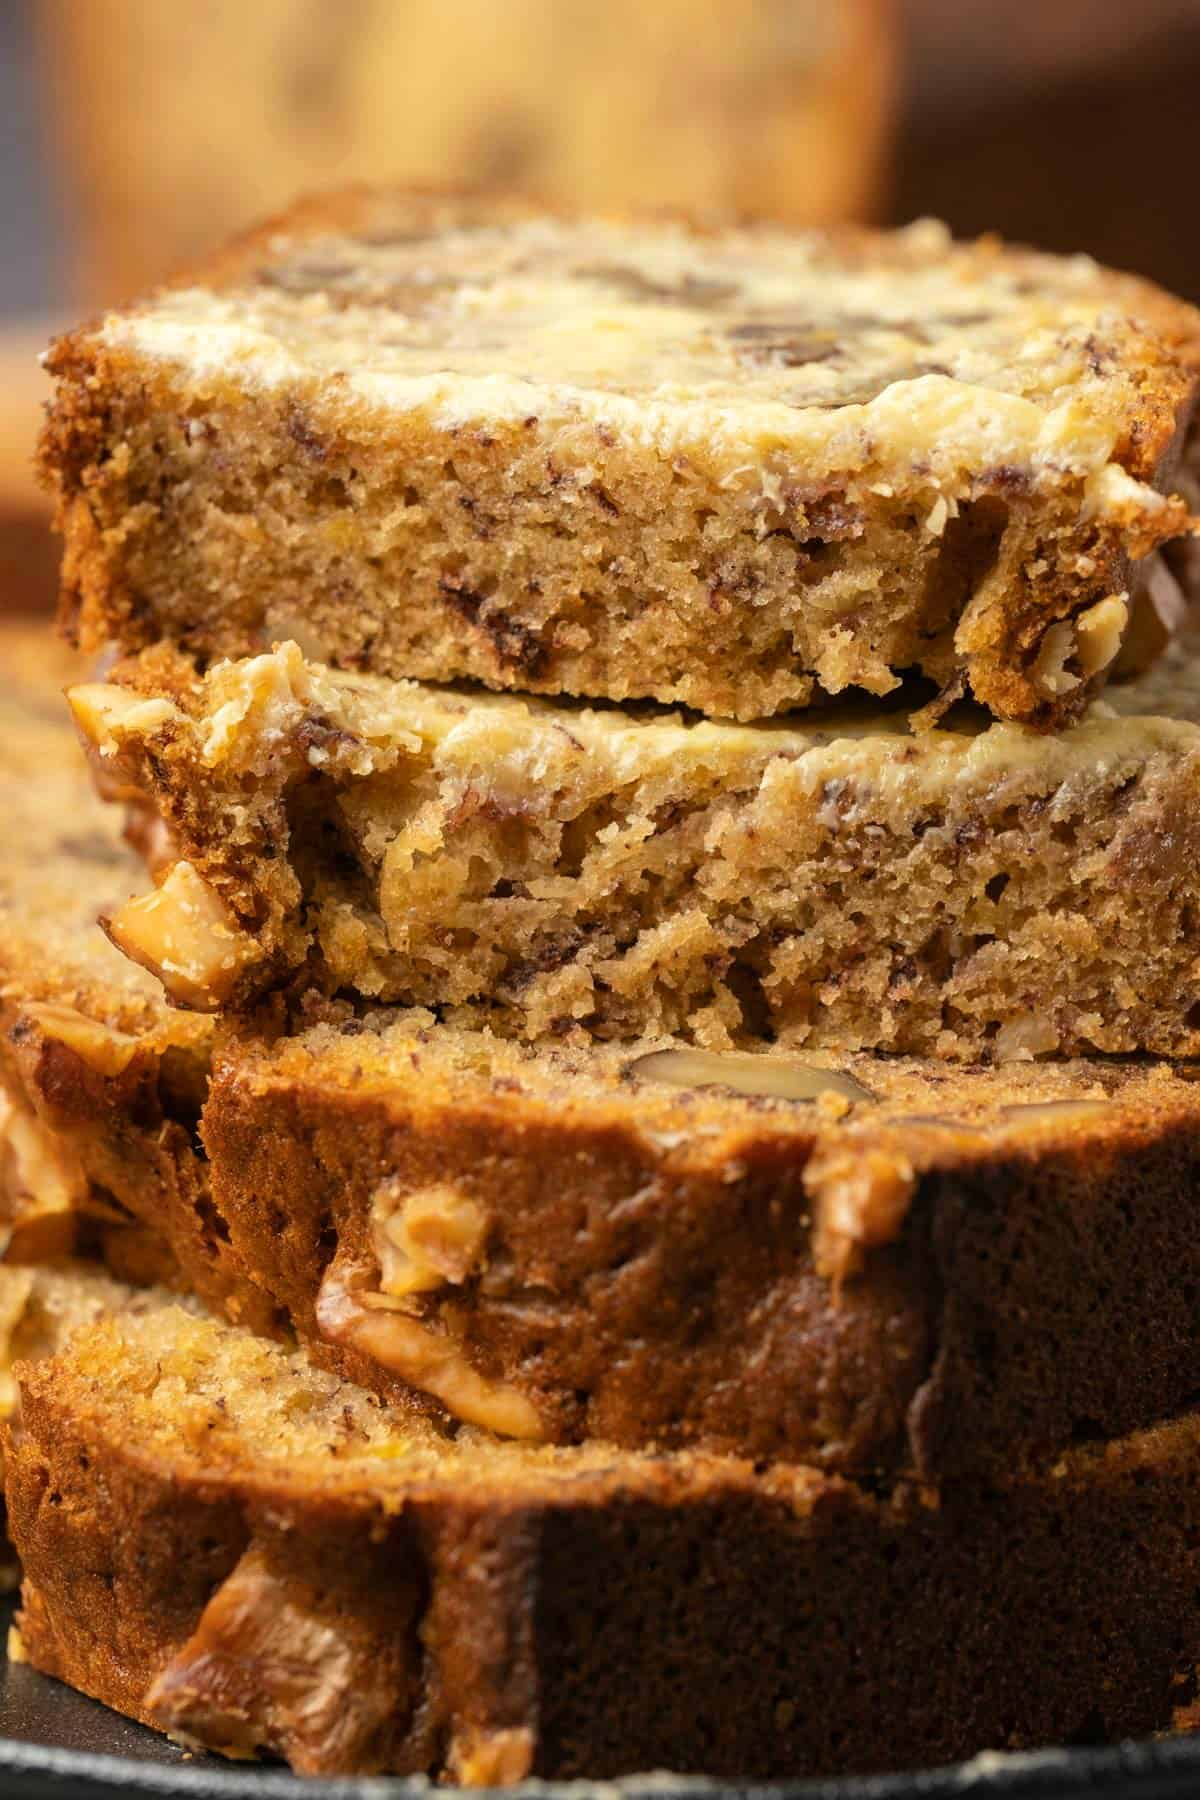 Slices of buttered banana bread in a stack.